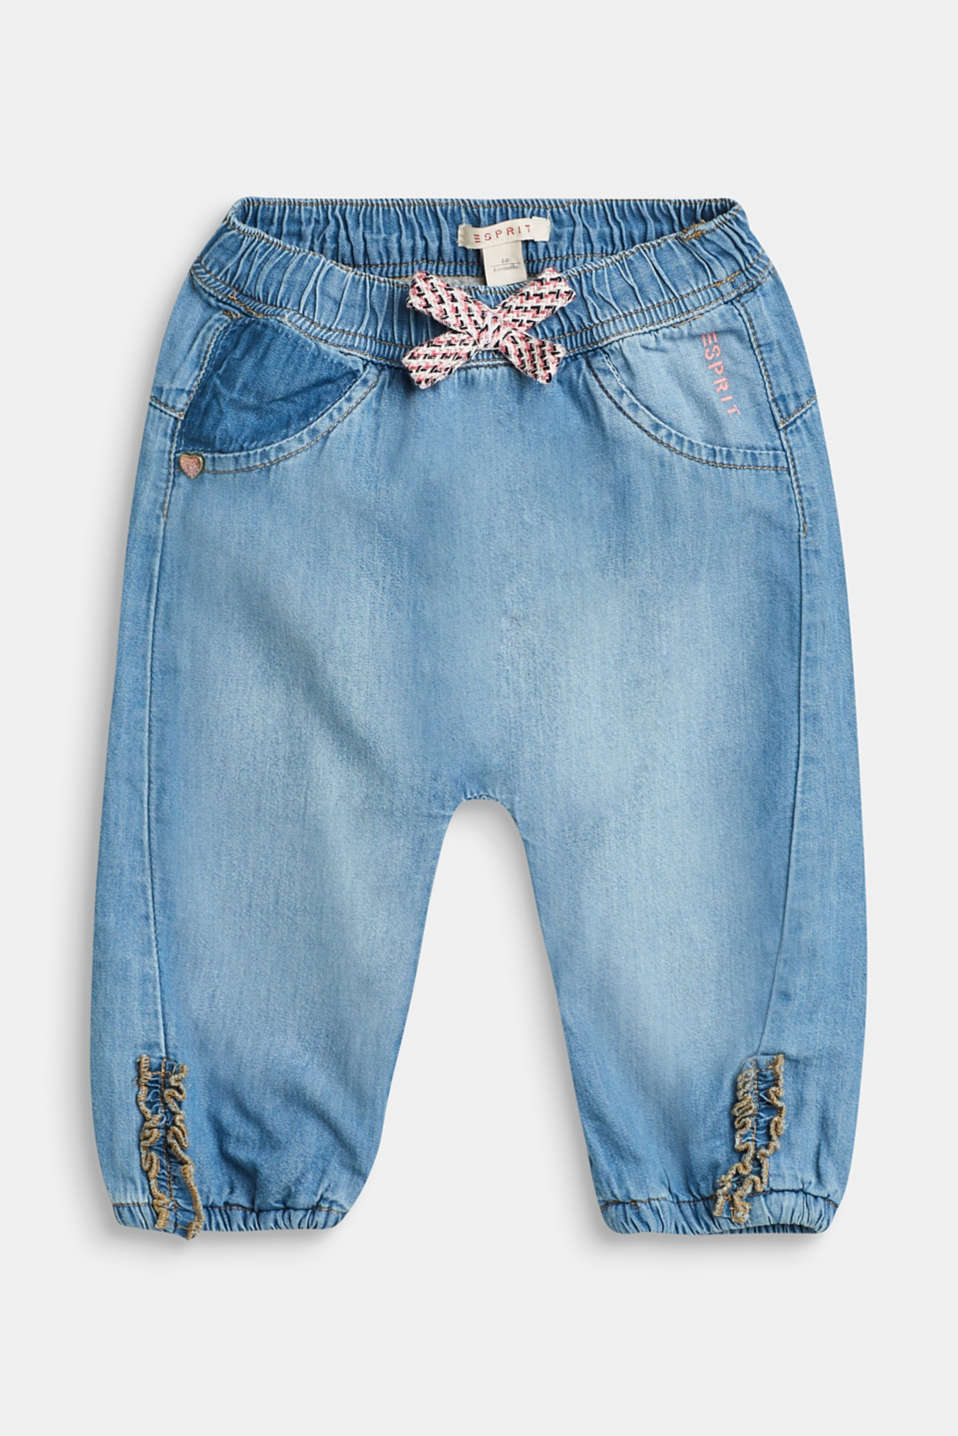 Esprit - Lined jeans with a decorative bow